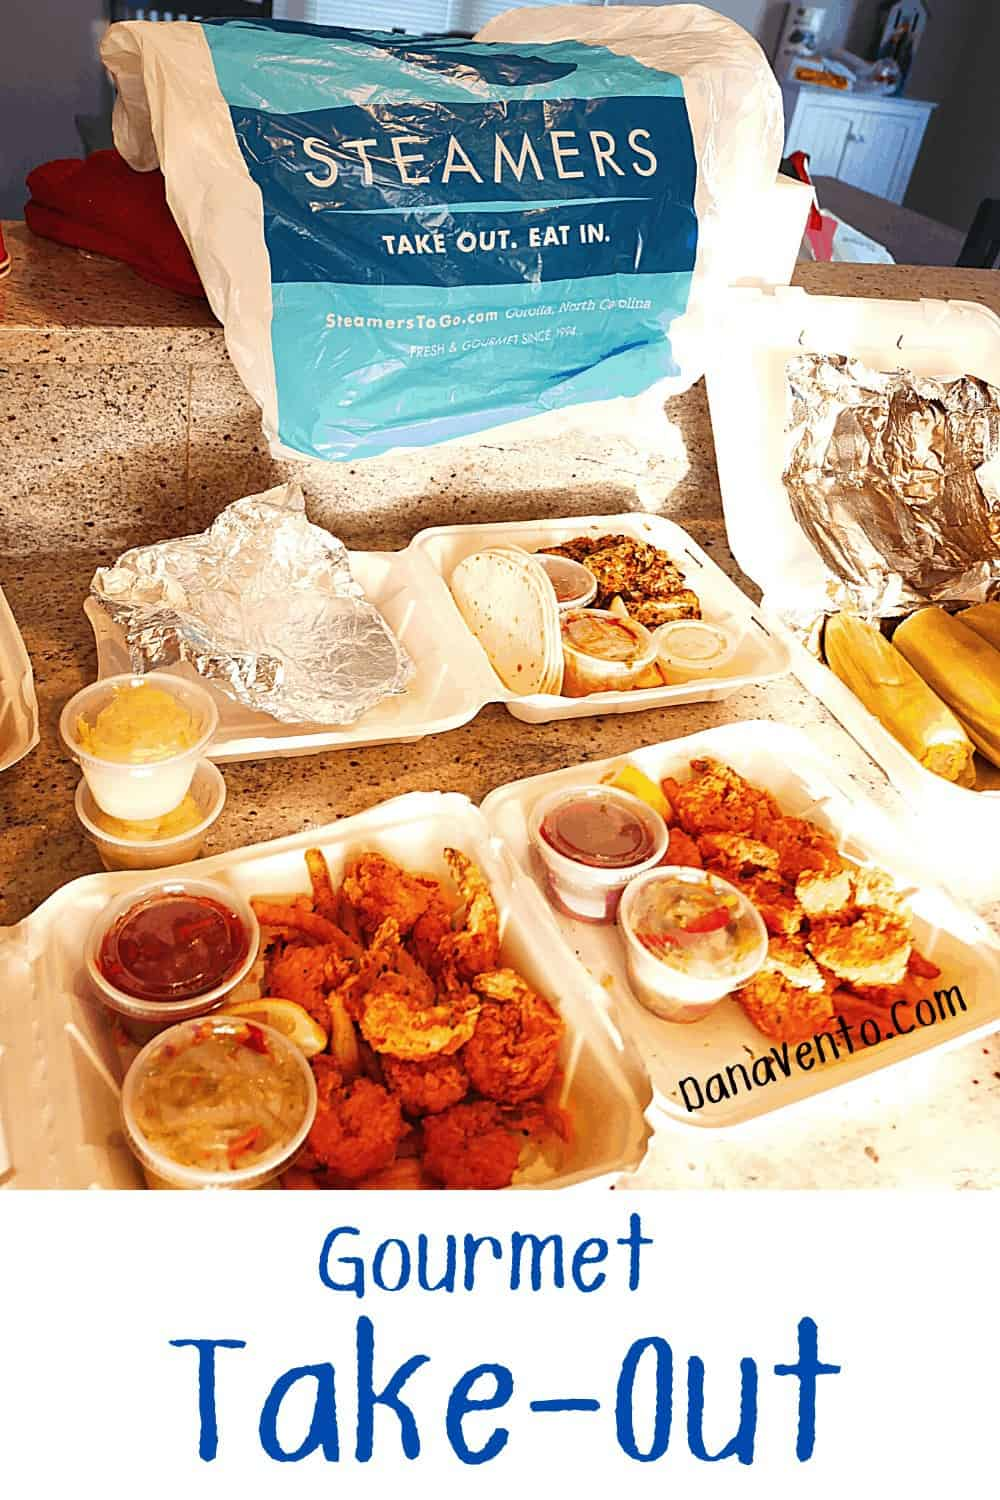 Gourmet Take Out at Steamers